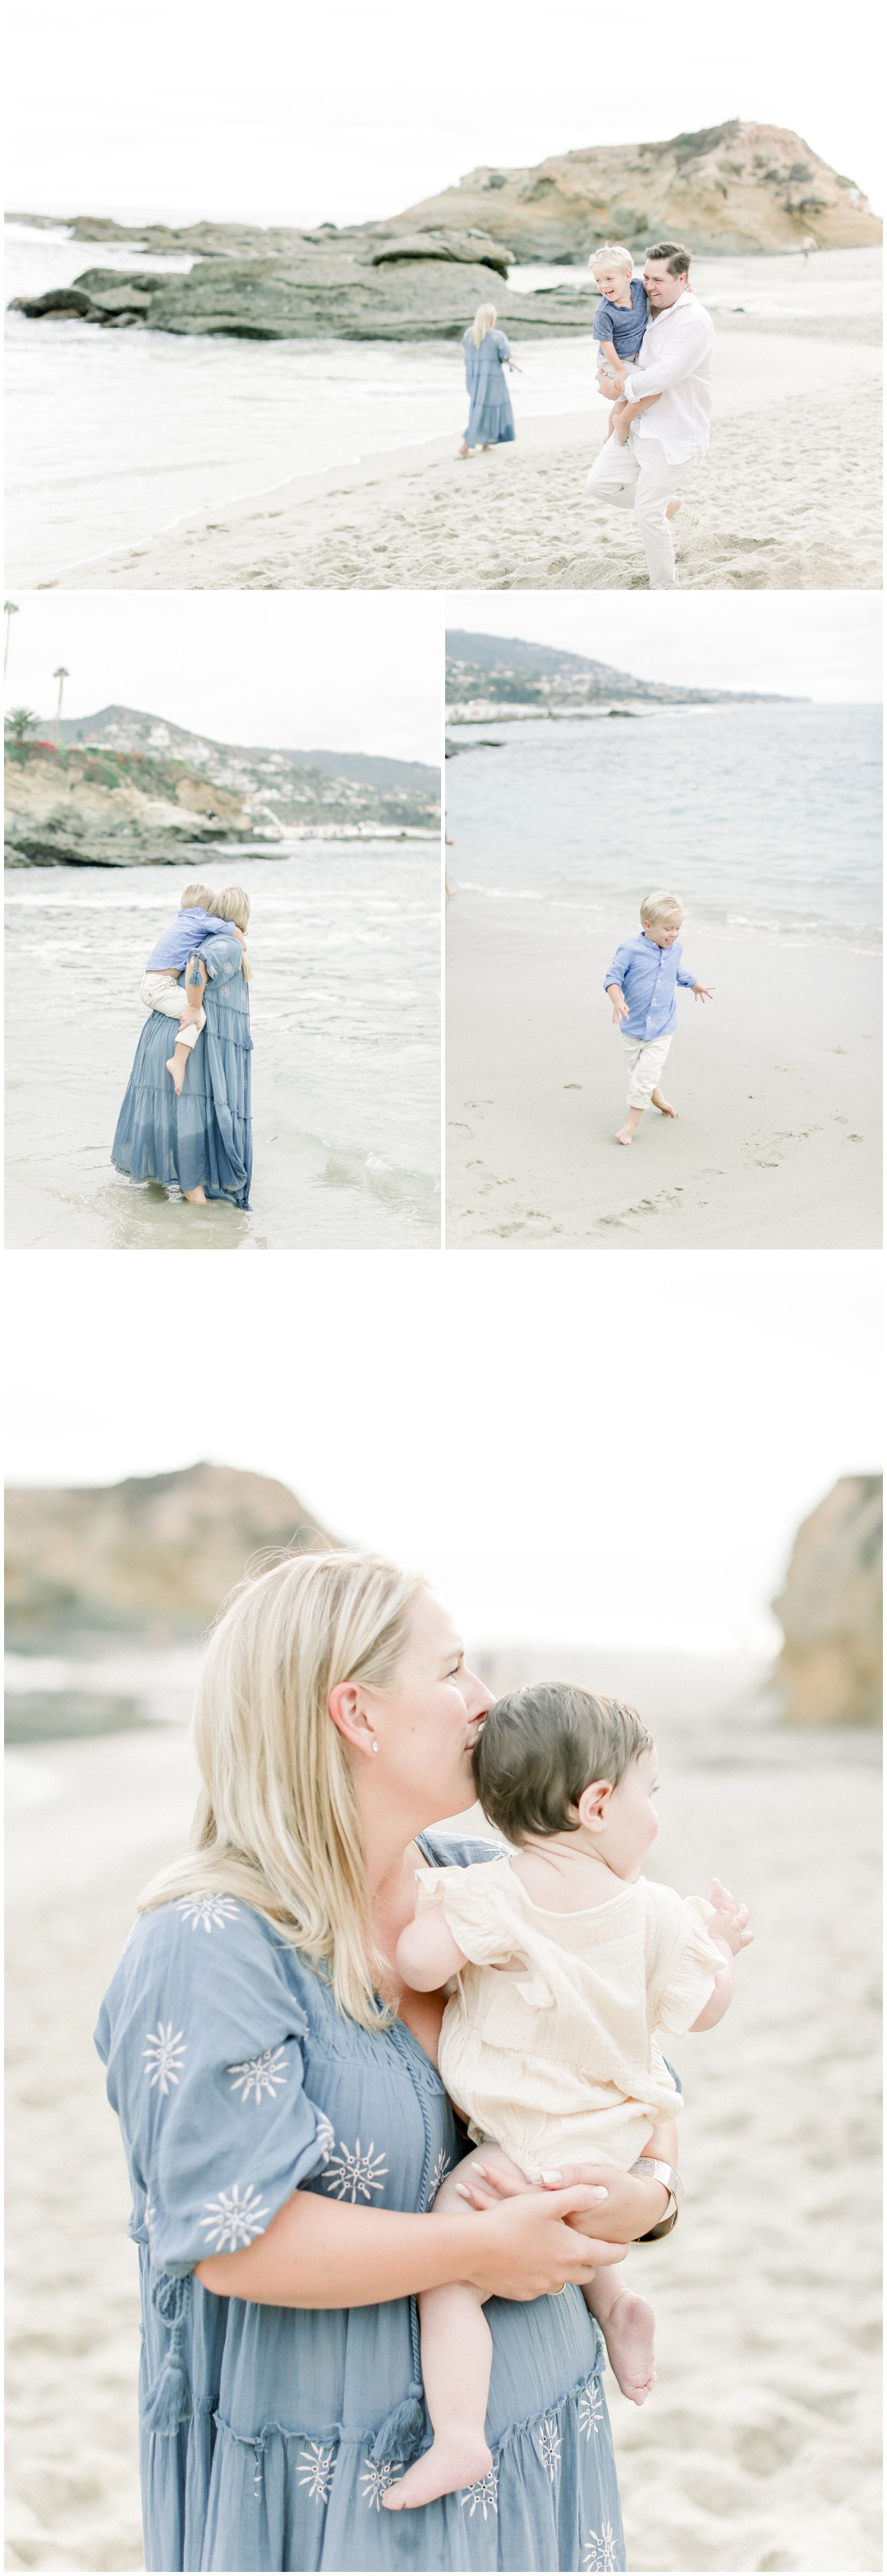 Newport+Beach+Newborn+Photographer+Orange+County+Family+Photographer+Cori+Kleckner+Photography+The+McClure+Family+Gracie+McClure_4382.jpg